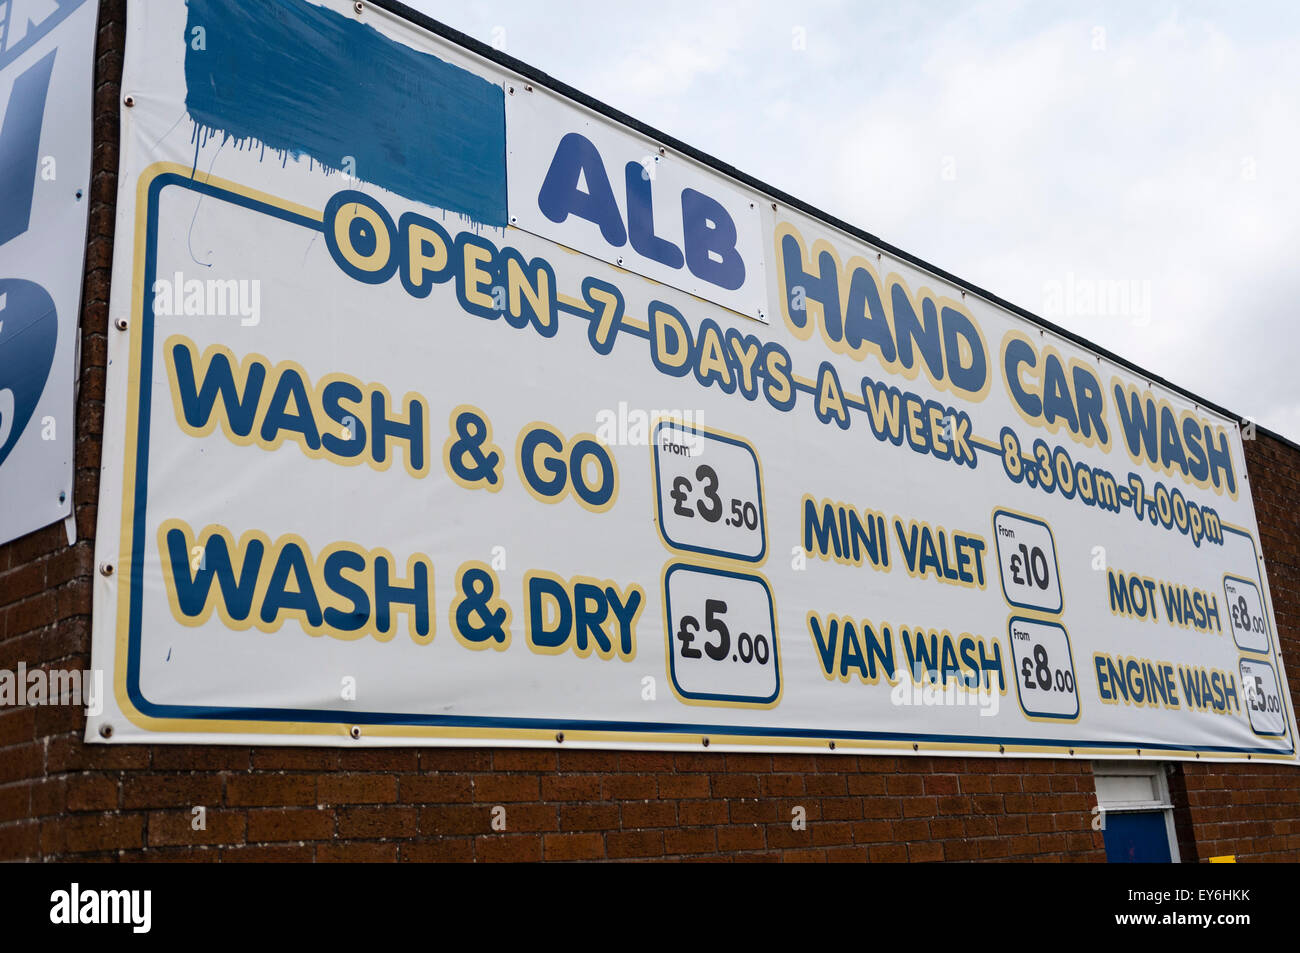 Prices At A Hand Car Wash Stock Photo 85582775 Alamy